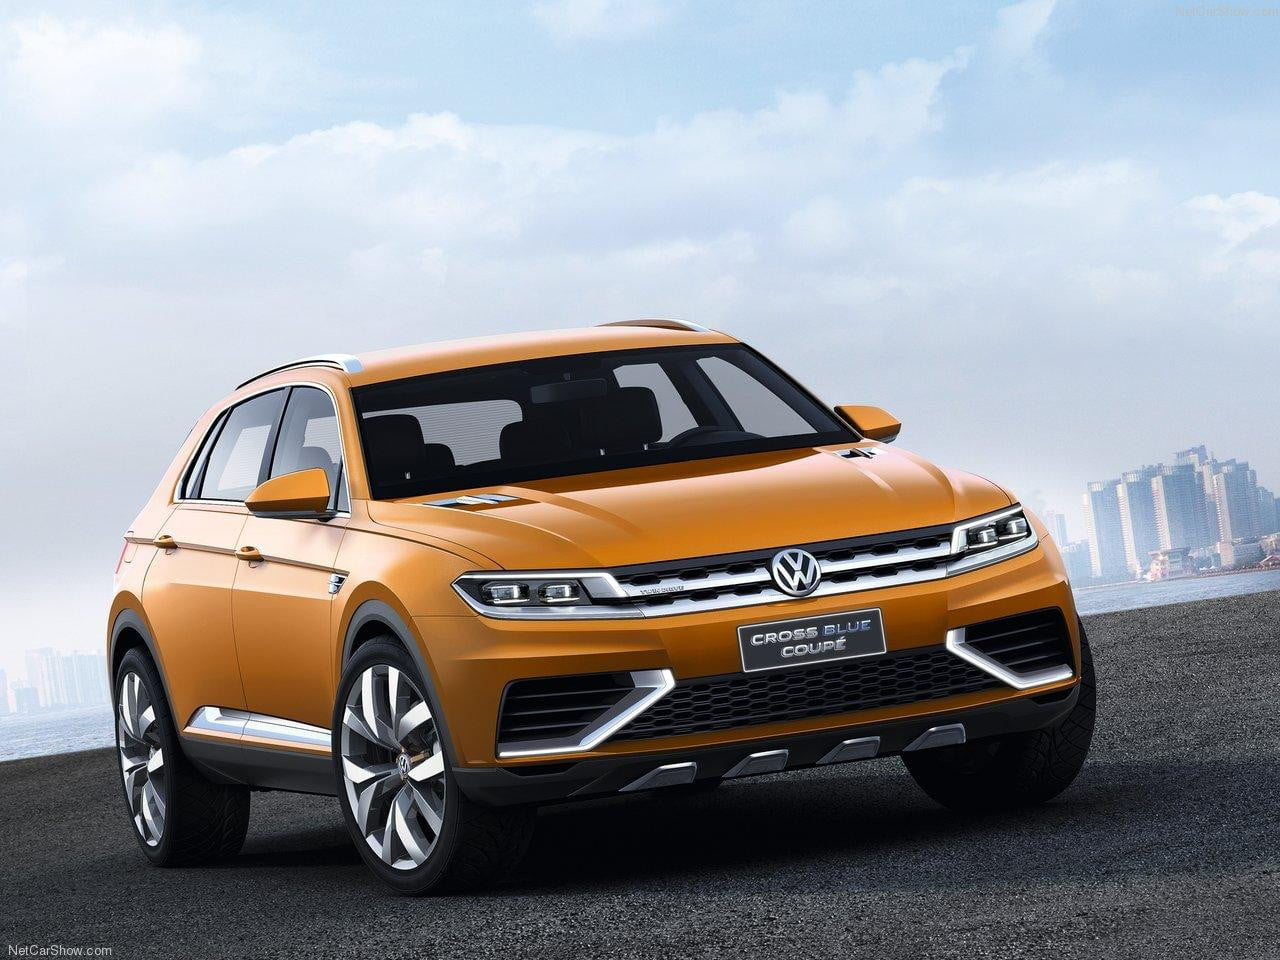 Volkswagen-CrossBlue_Coupe concept front angle